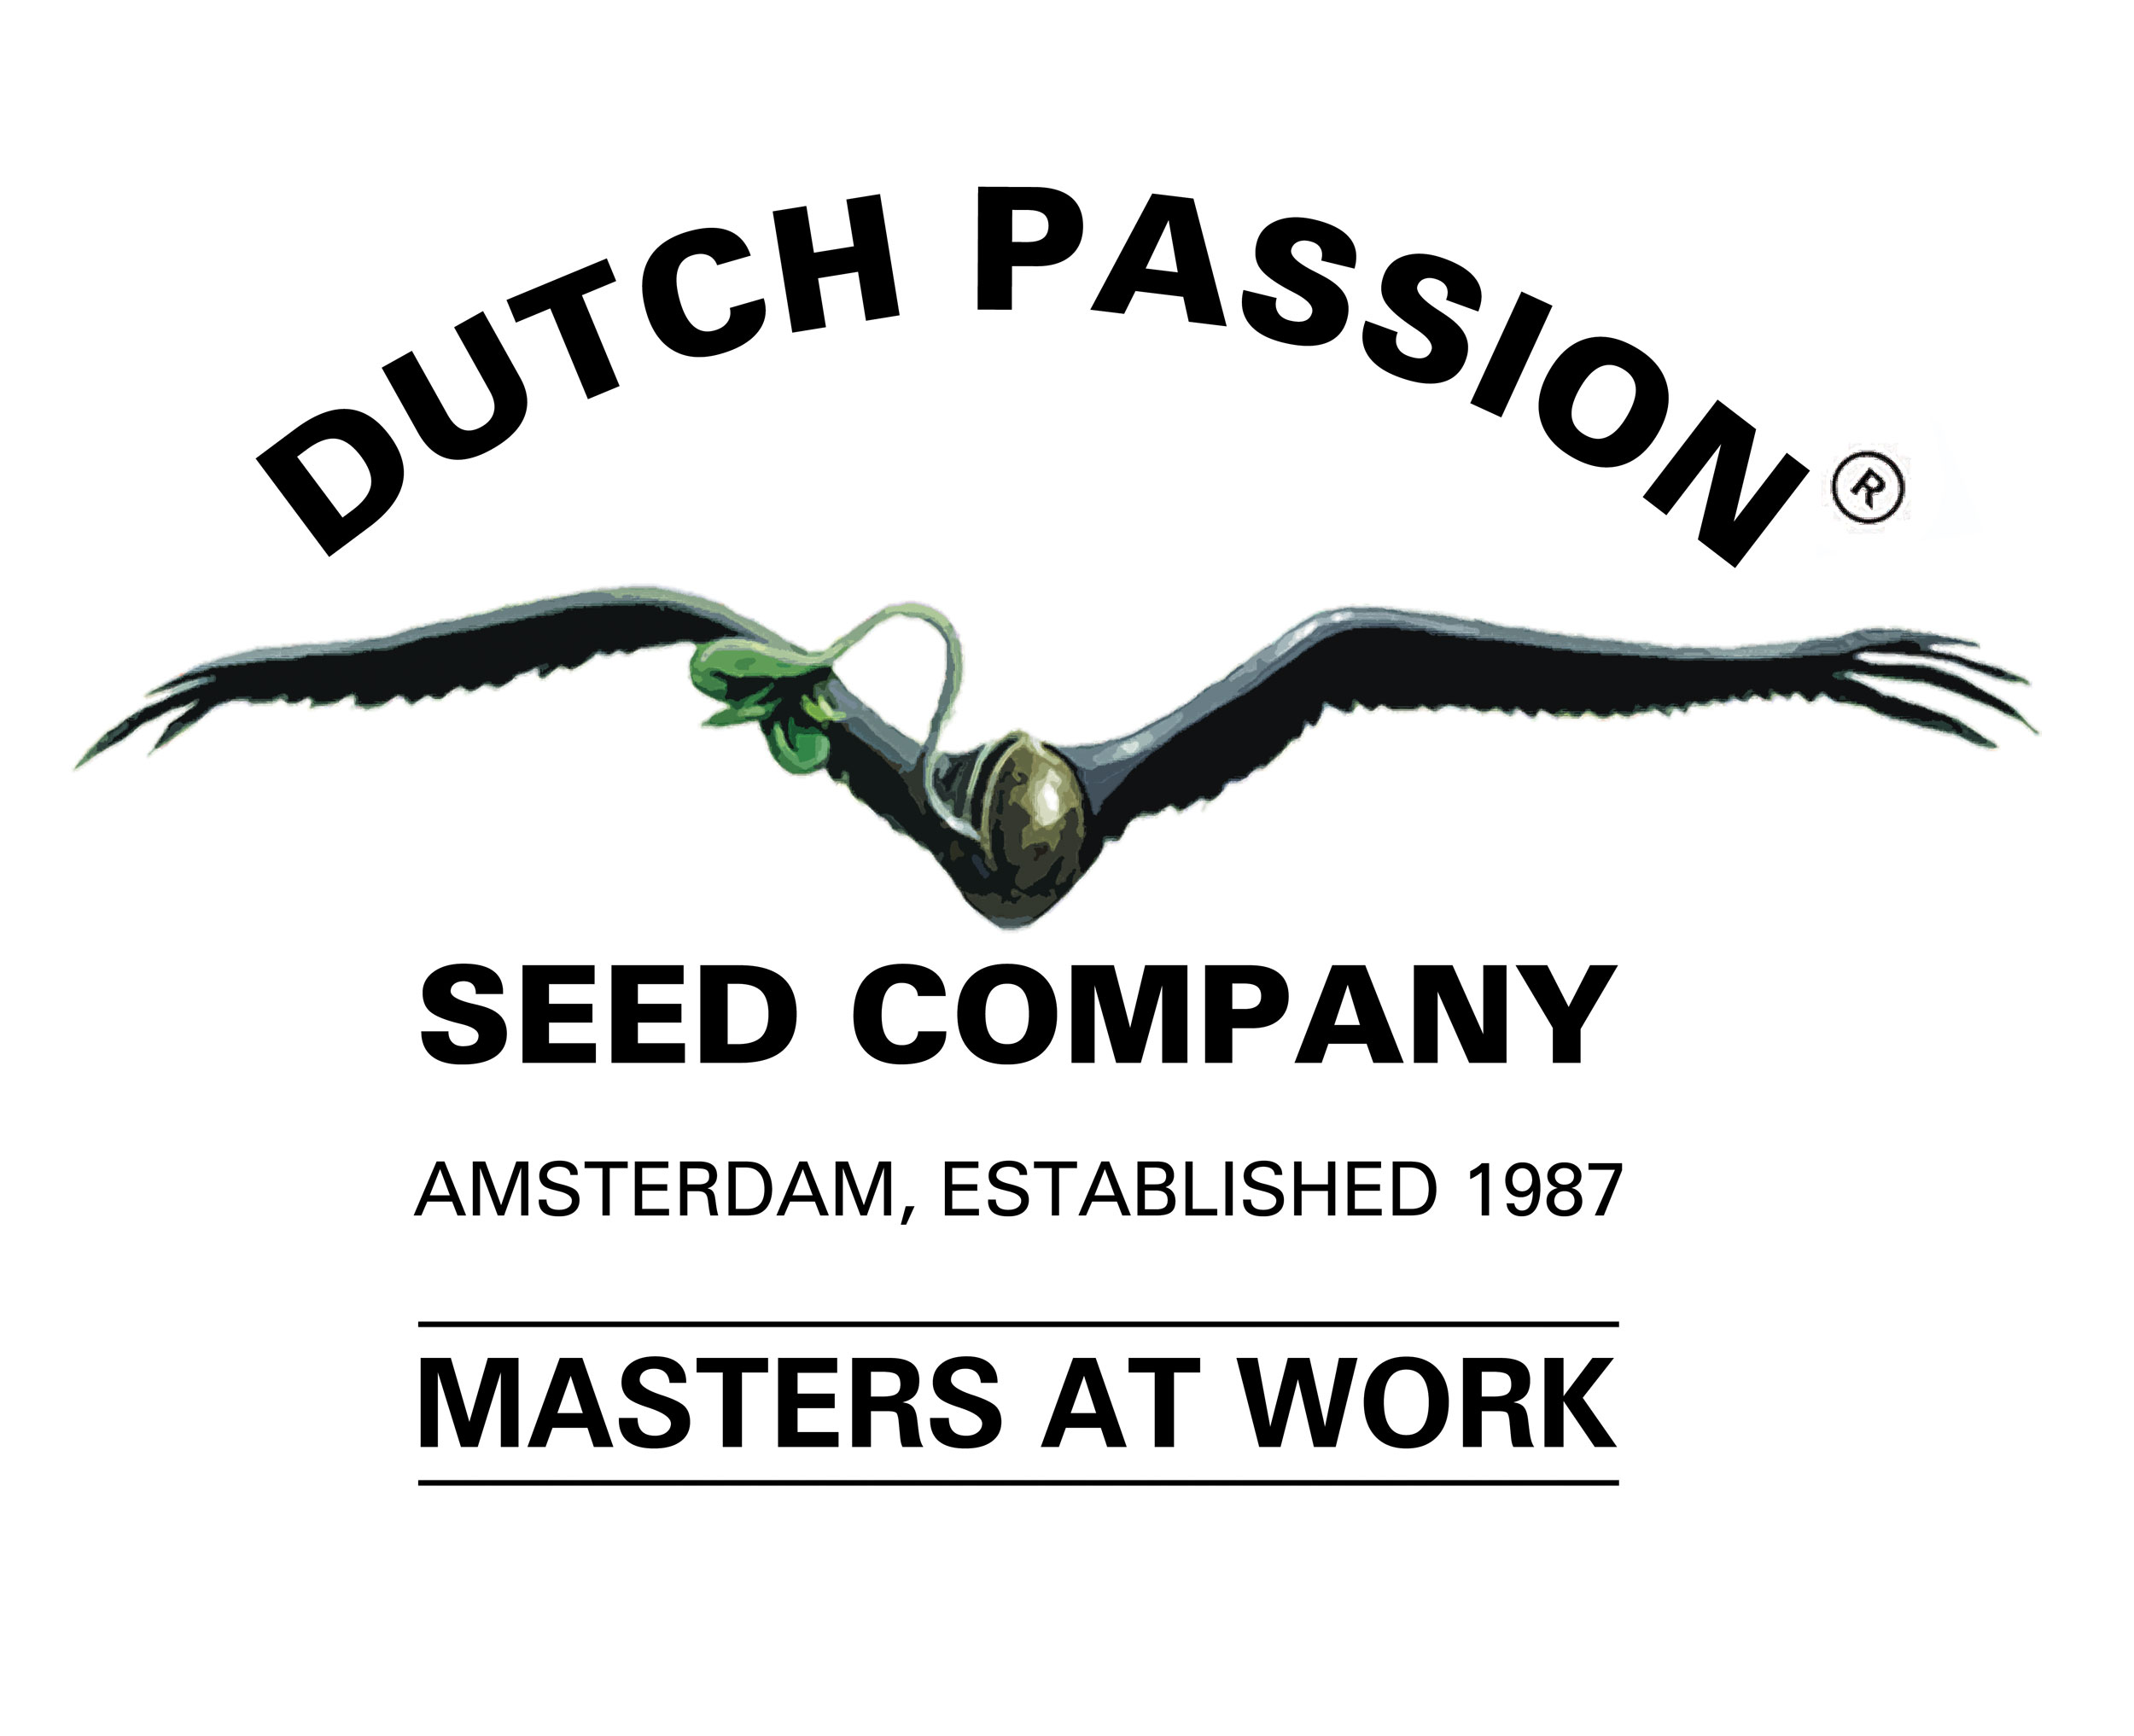 Dutch Passion Purple #1 10ks Regular (Regular)